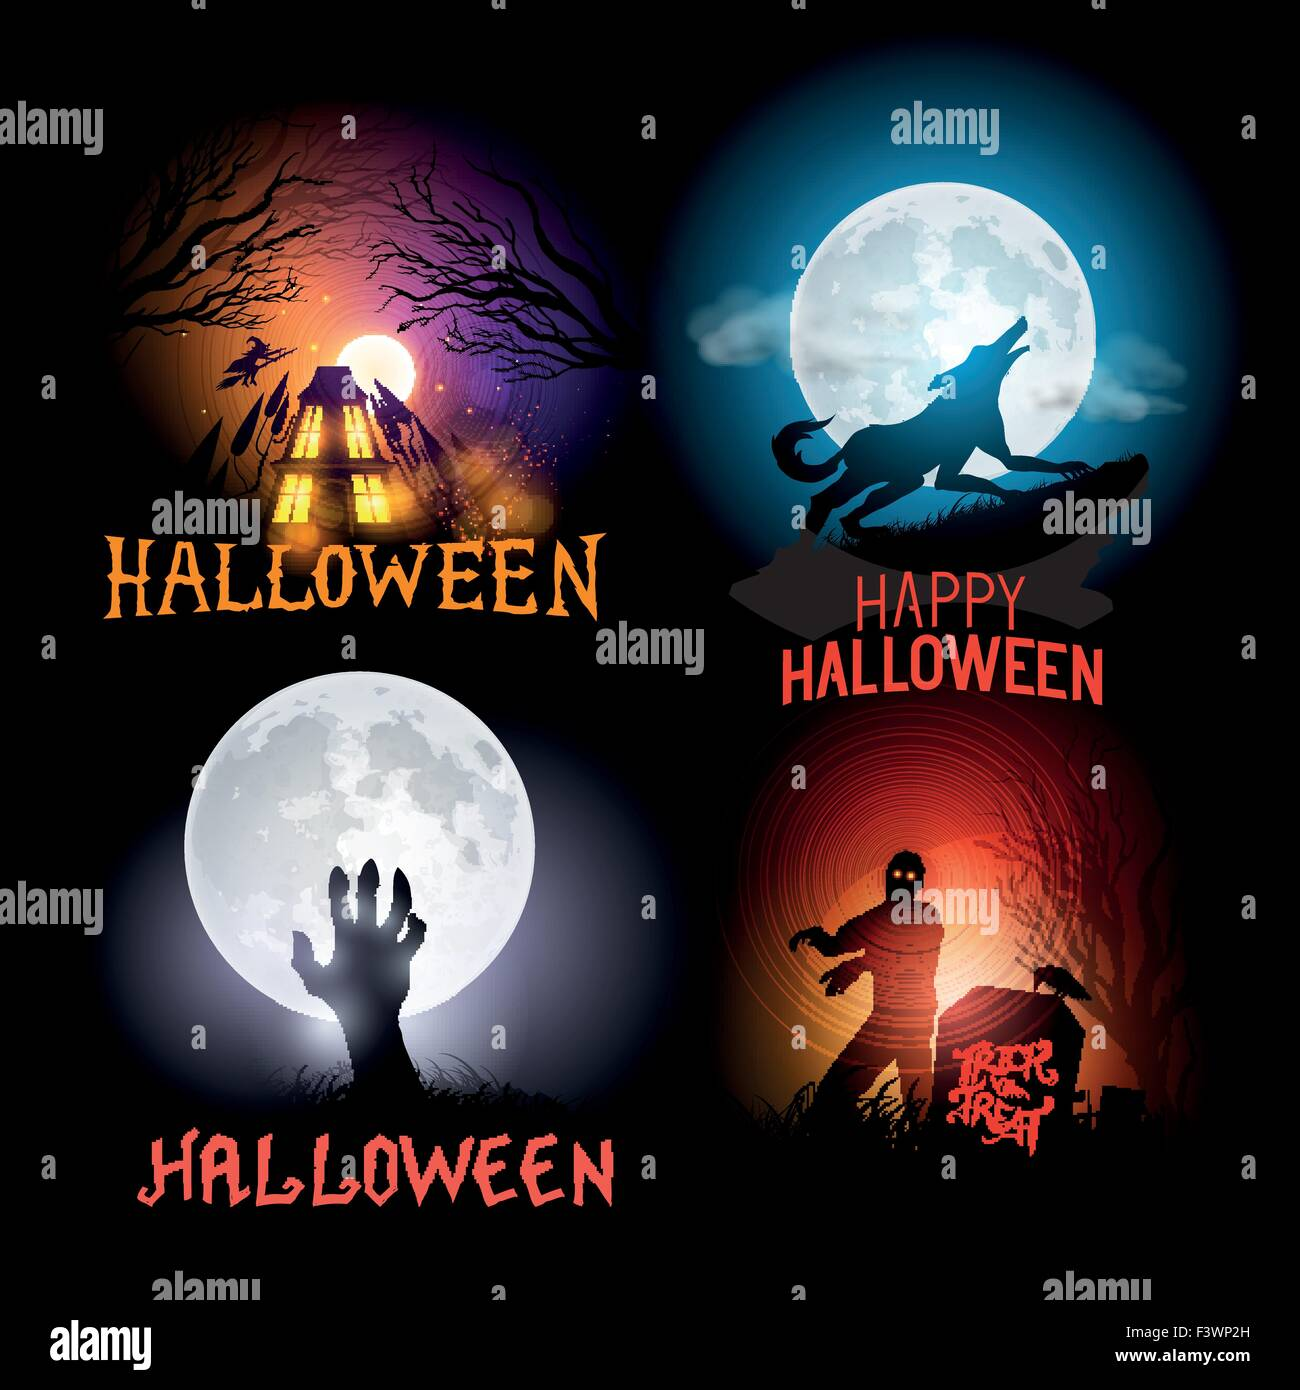 Halloween Vector Backgrounds. Scenes included a haunted house, a werewolf and zombies. Vector illustration. - Stock Image